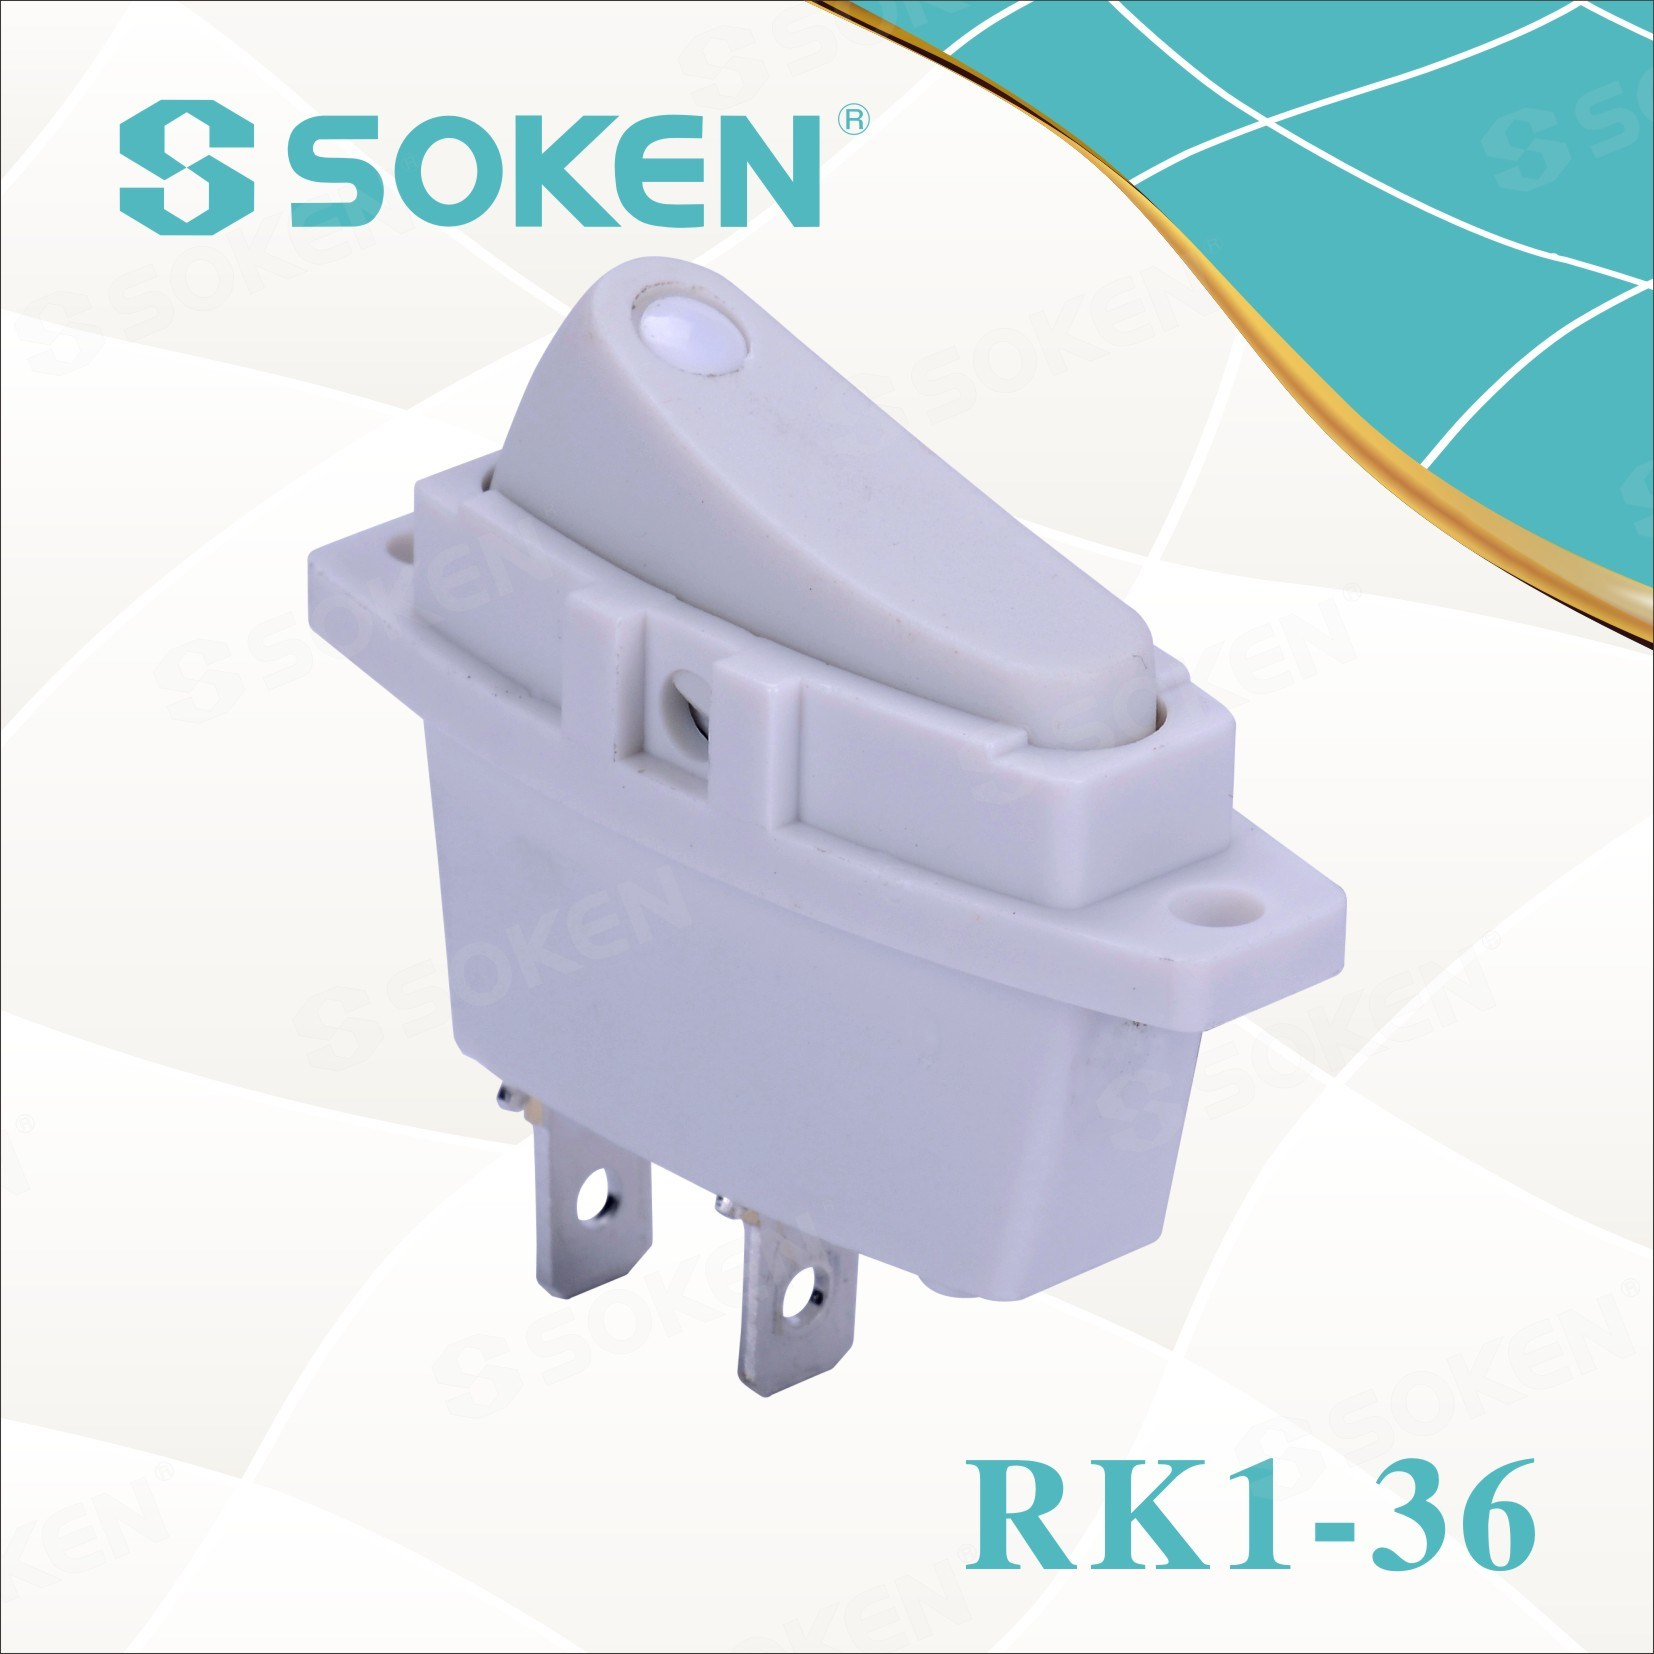 Soken Rk1-36 1X1 on off interruptor Rocker